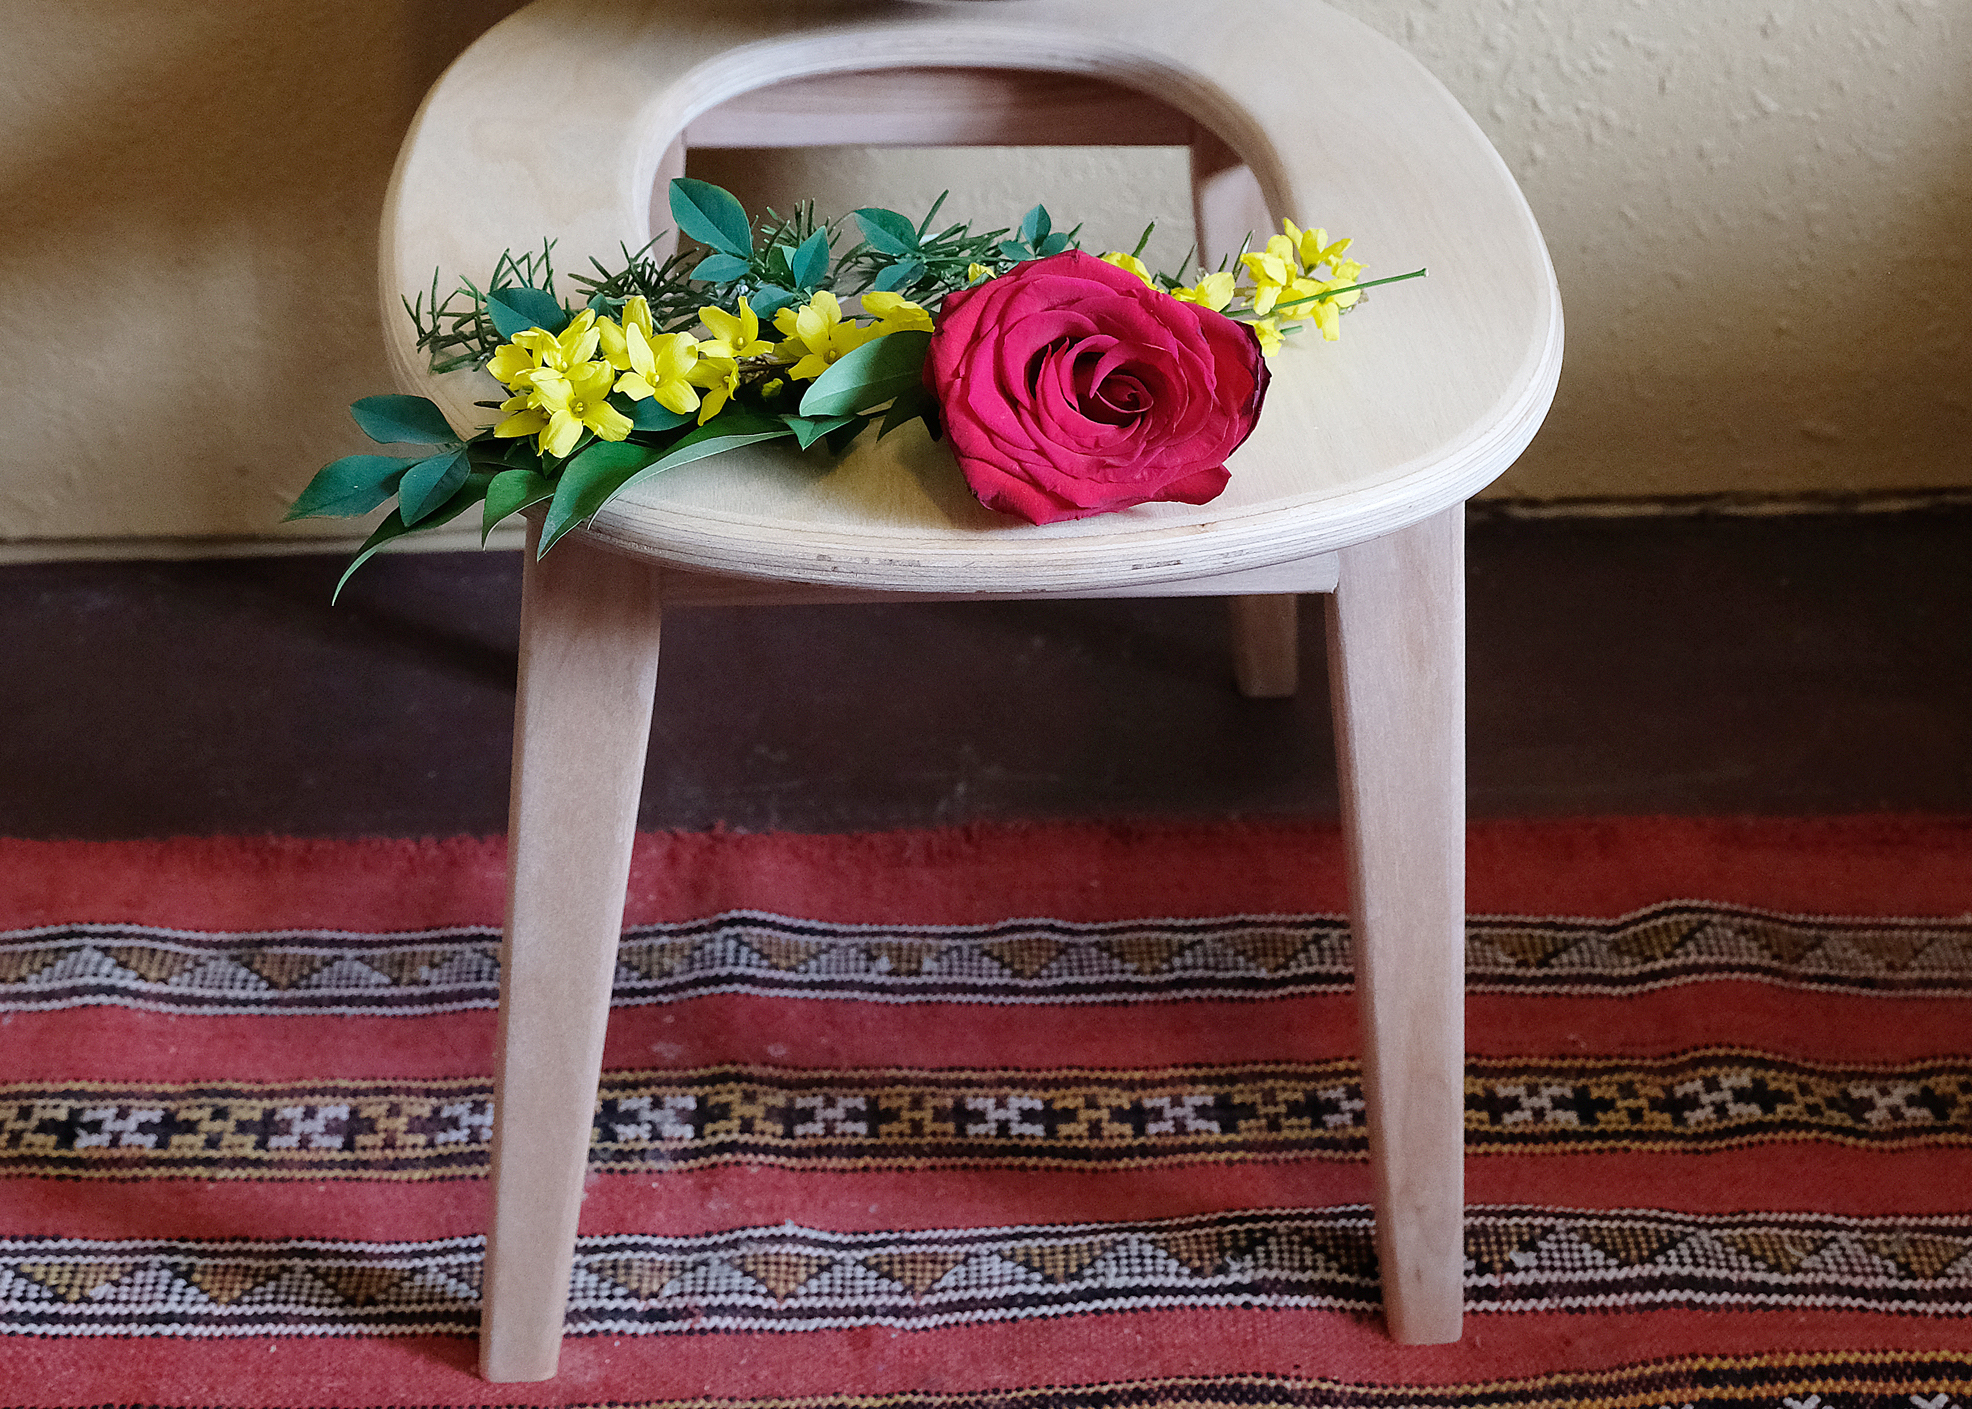 divine feminine energy healing with flowers and steam stool